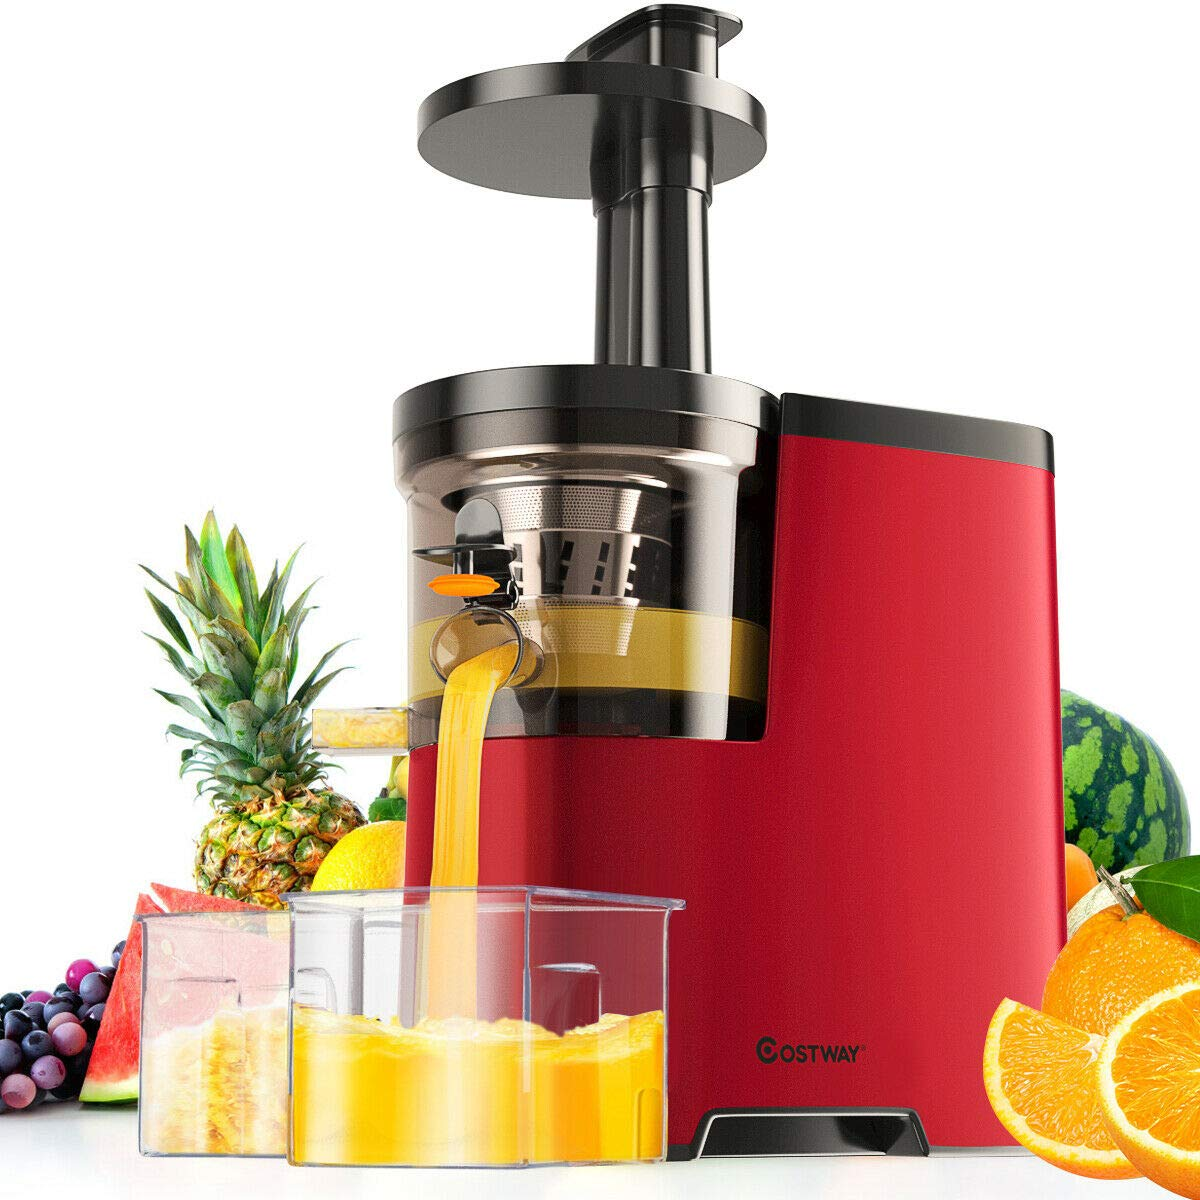 COSTWAY Slow Masticating Juicer Machine, Juicer Extractor with Cold Press Masticating Squeezer Mechanism Technology, Quiet Motor & Reverse Function, High Nutrient Fruit and Vegetable Juice, BPA-Free, 60R/M, 150W